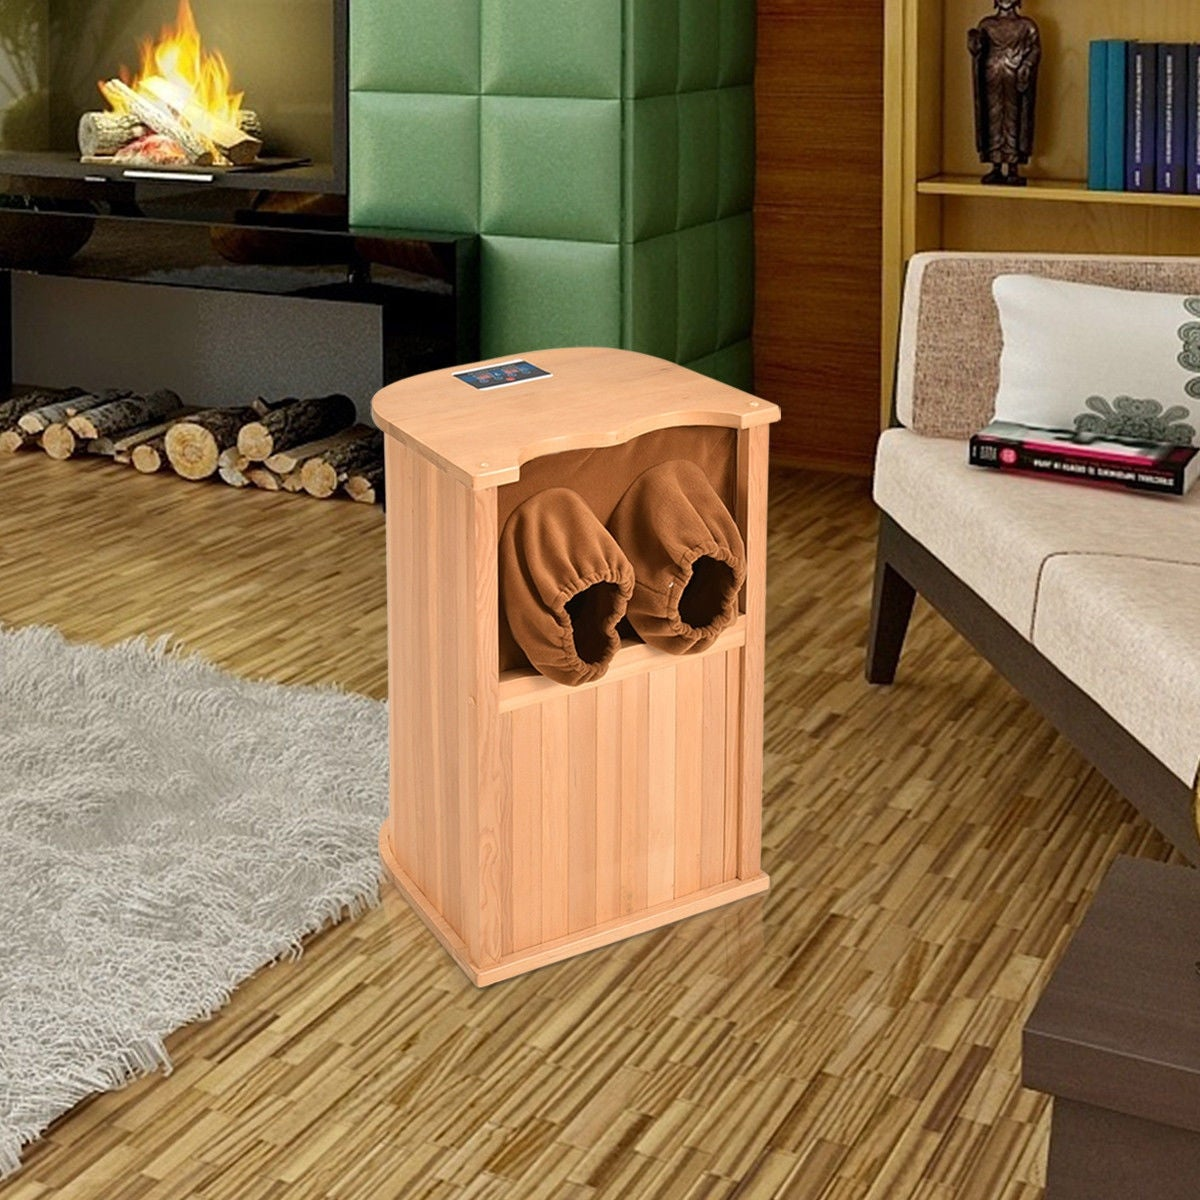 Costway Infrared Wooden Foot Sauna Dry Bath Health Spa & Therapy w ...